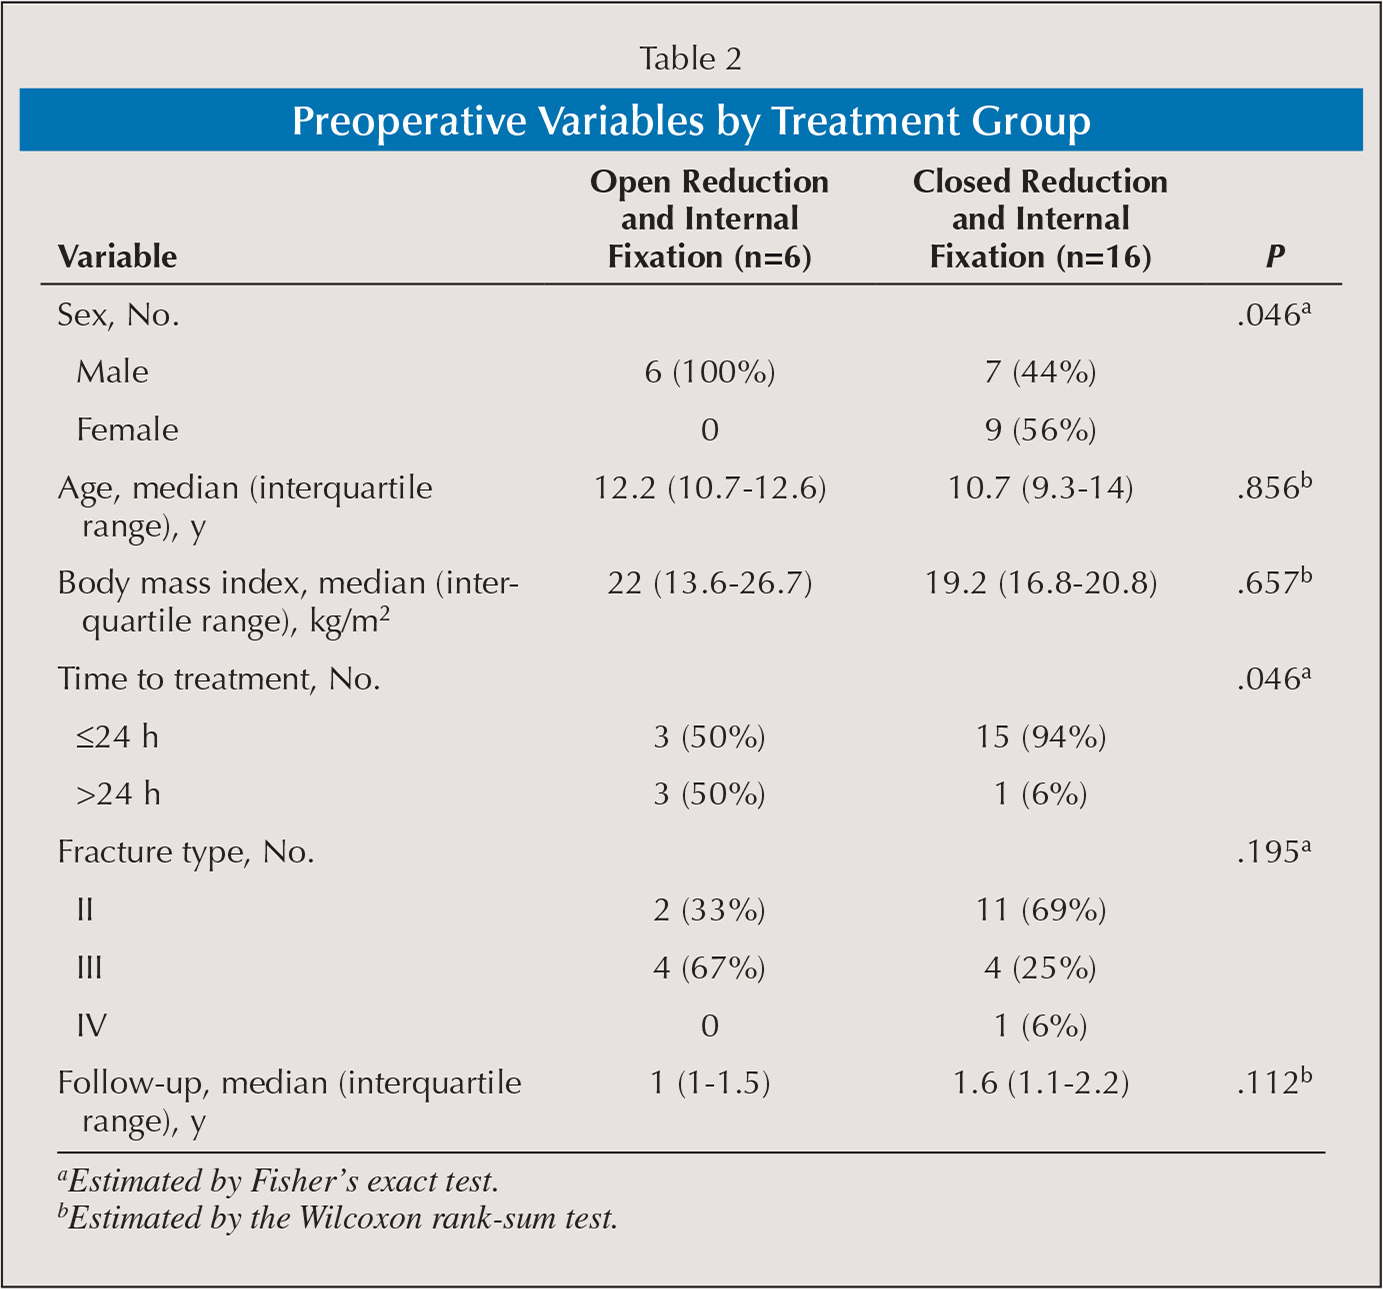 Preoperative Variables by Treatment Group